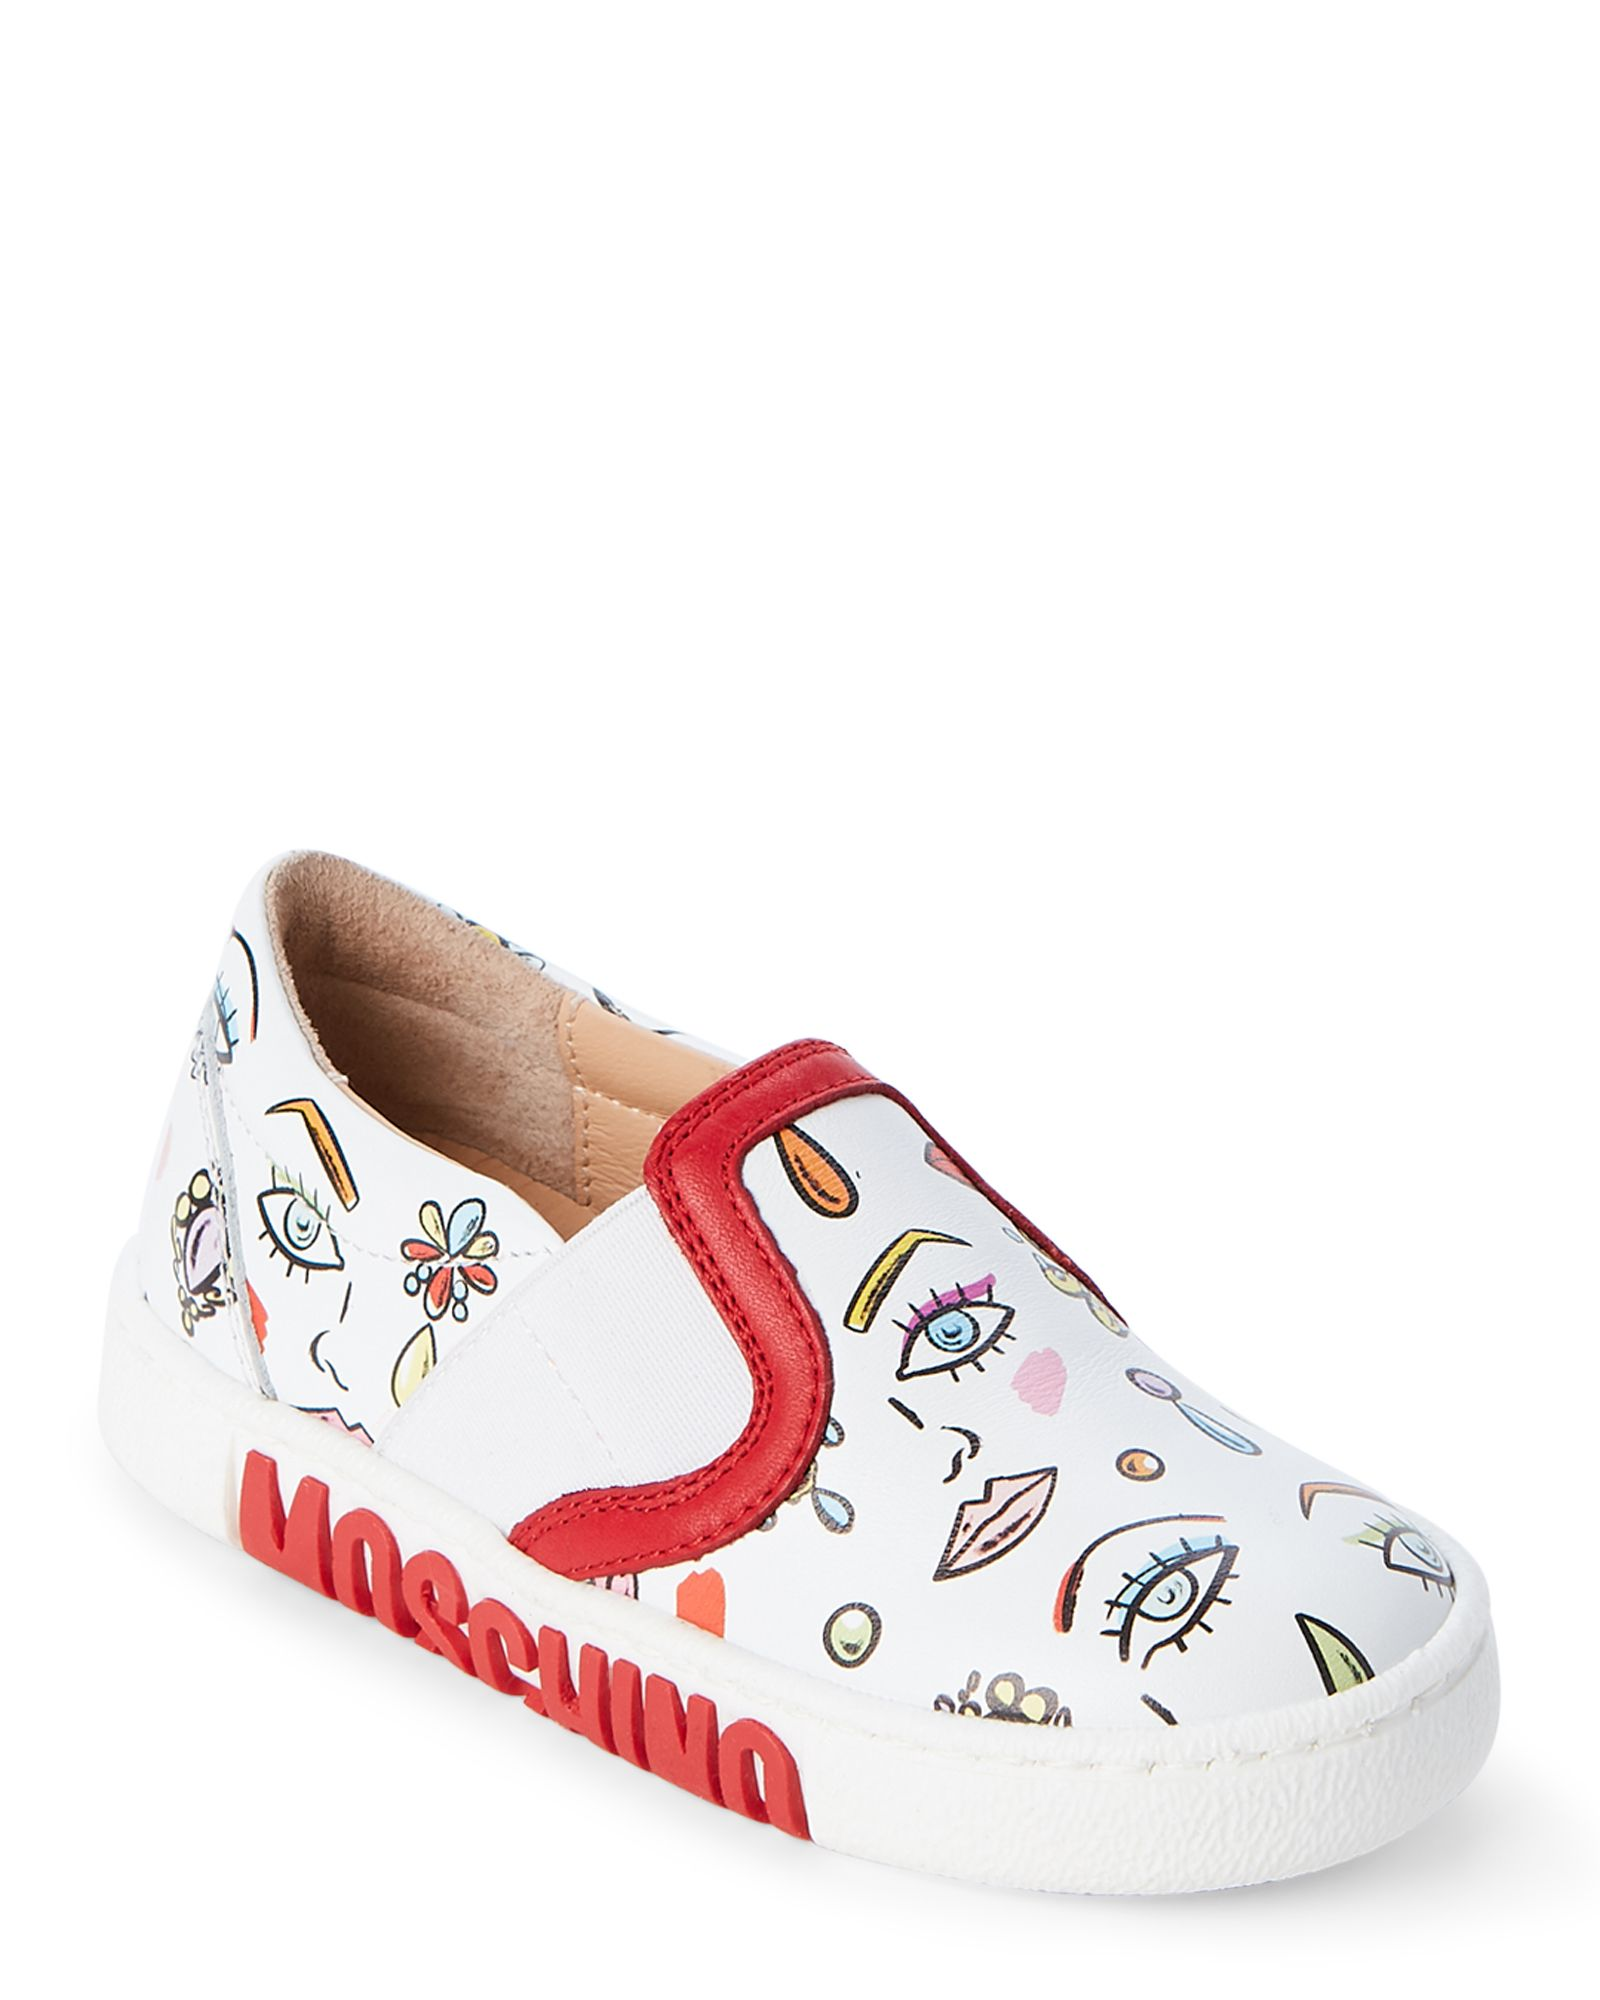 5643eb8c16c4 Moschino (Toddler Kids Girls) White Leather Face Print Slip On Sneakers